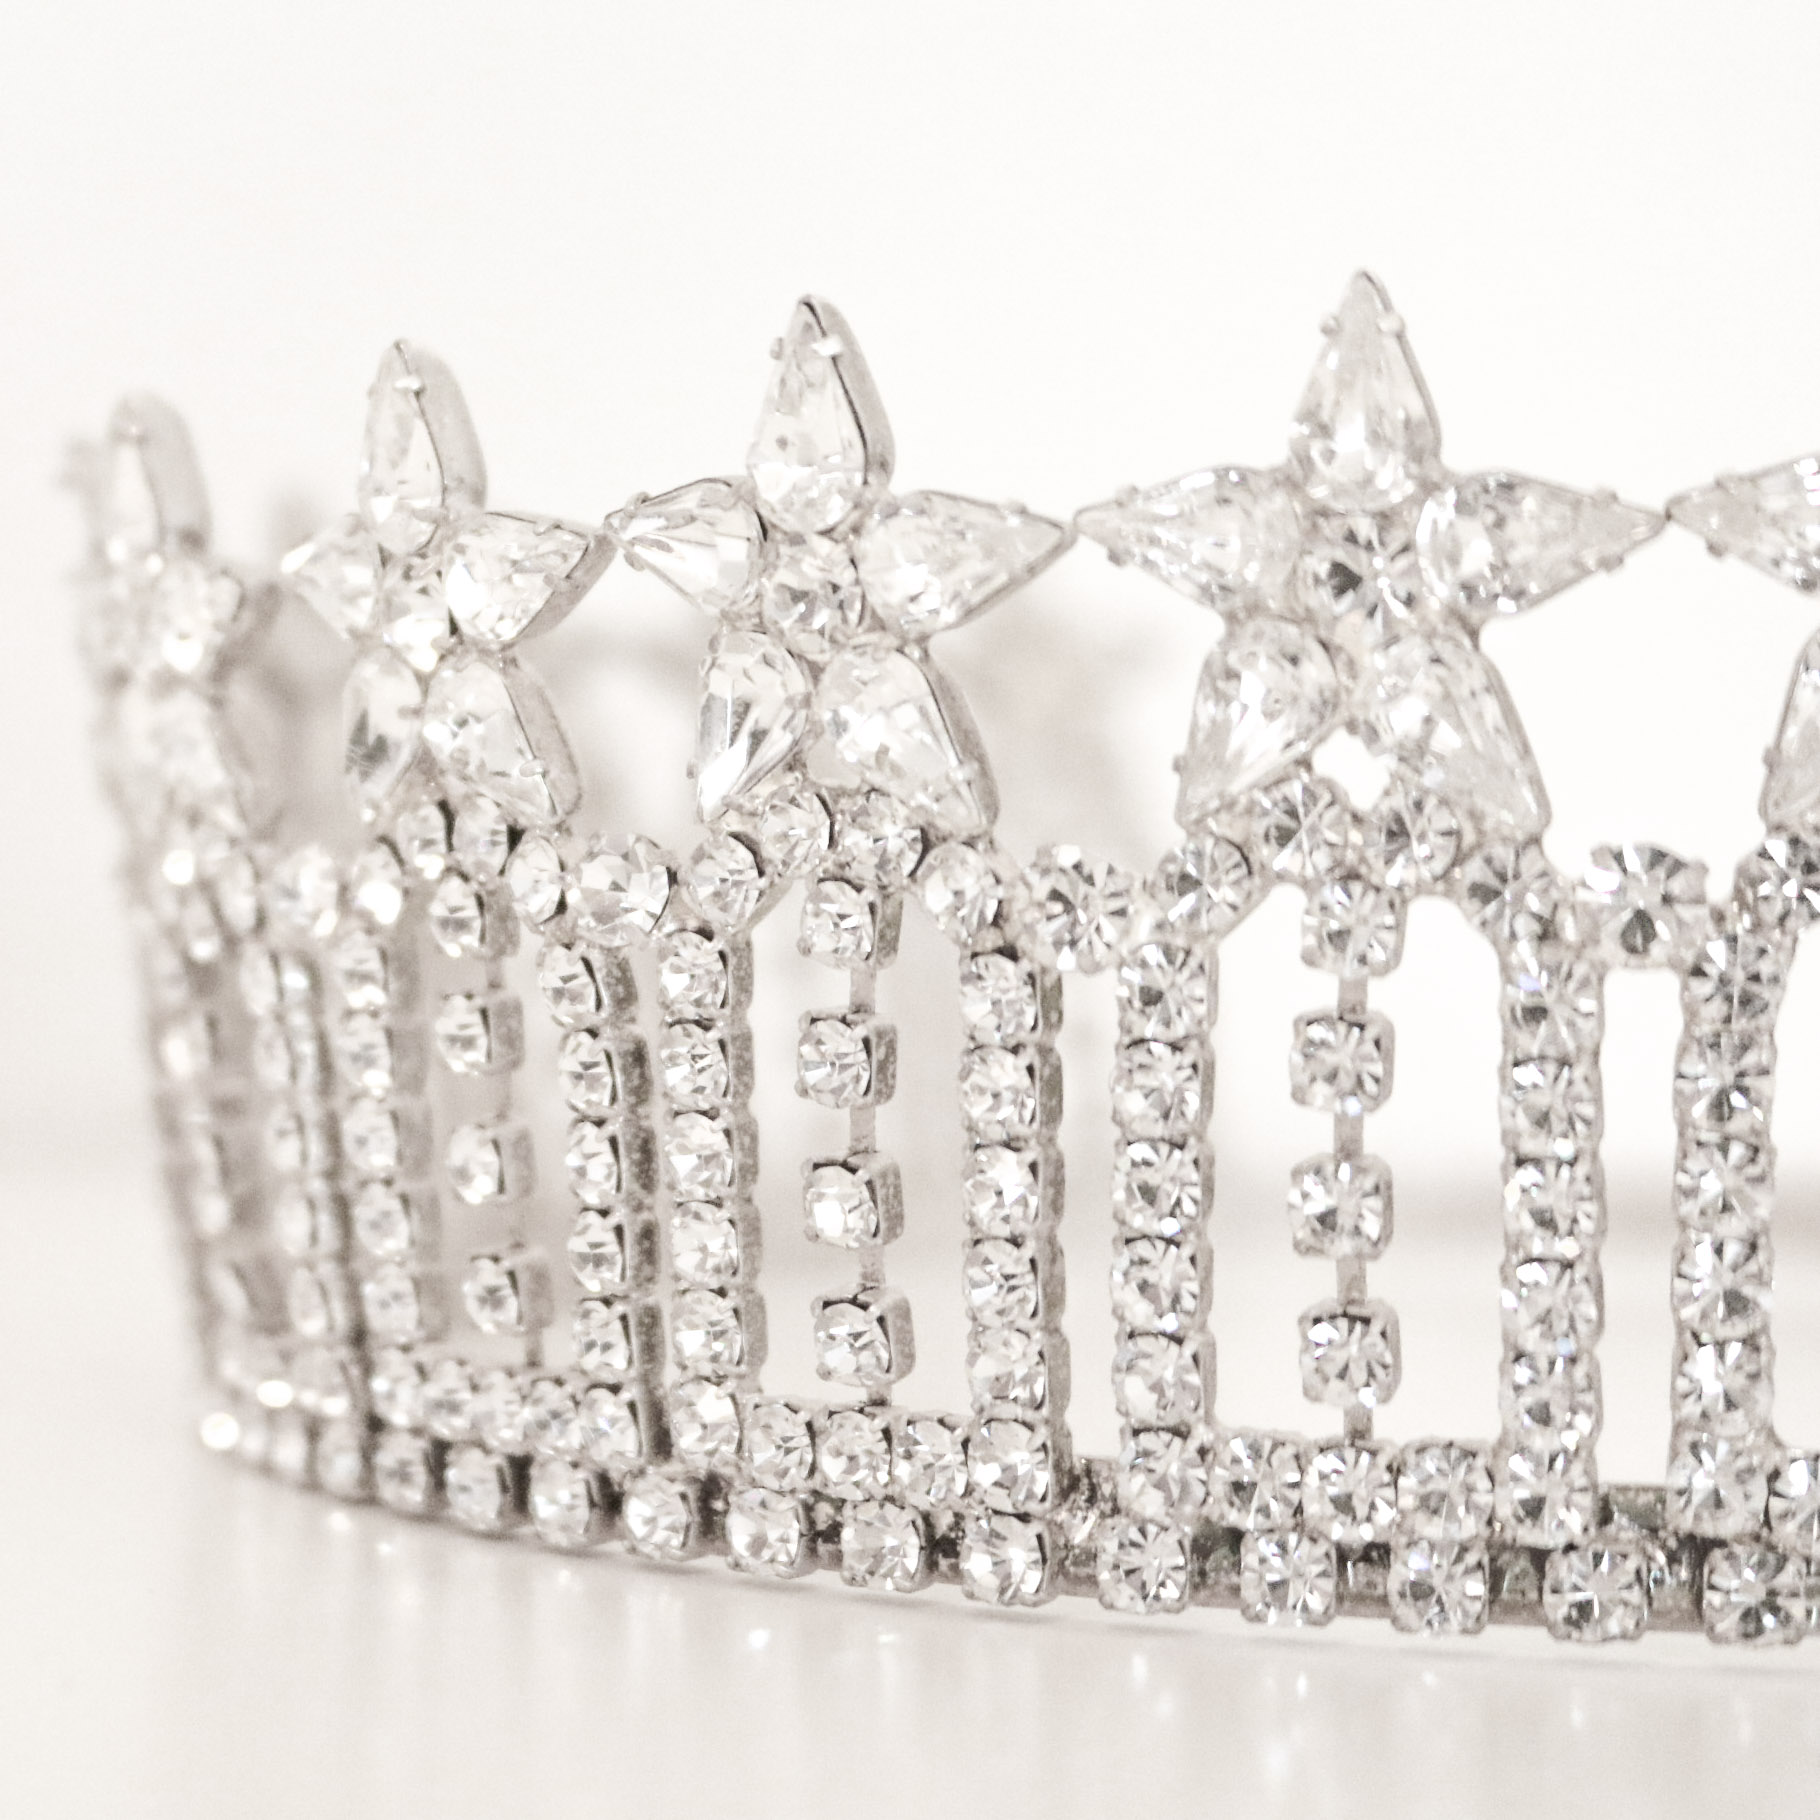 Miss Montana USA crown